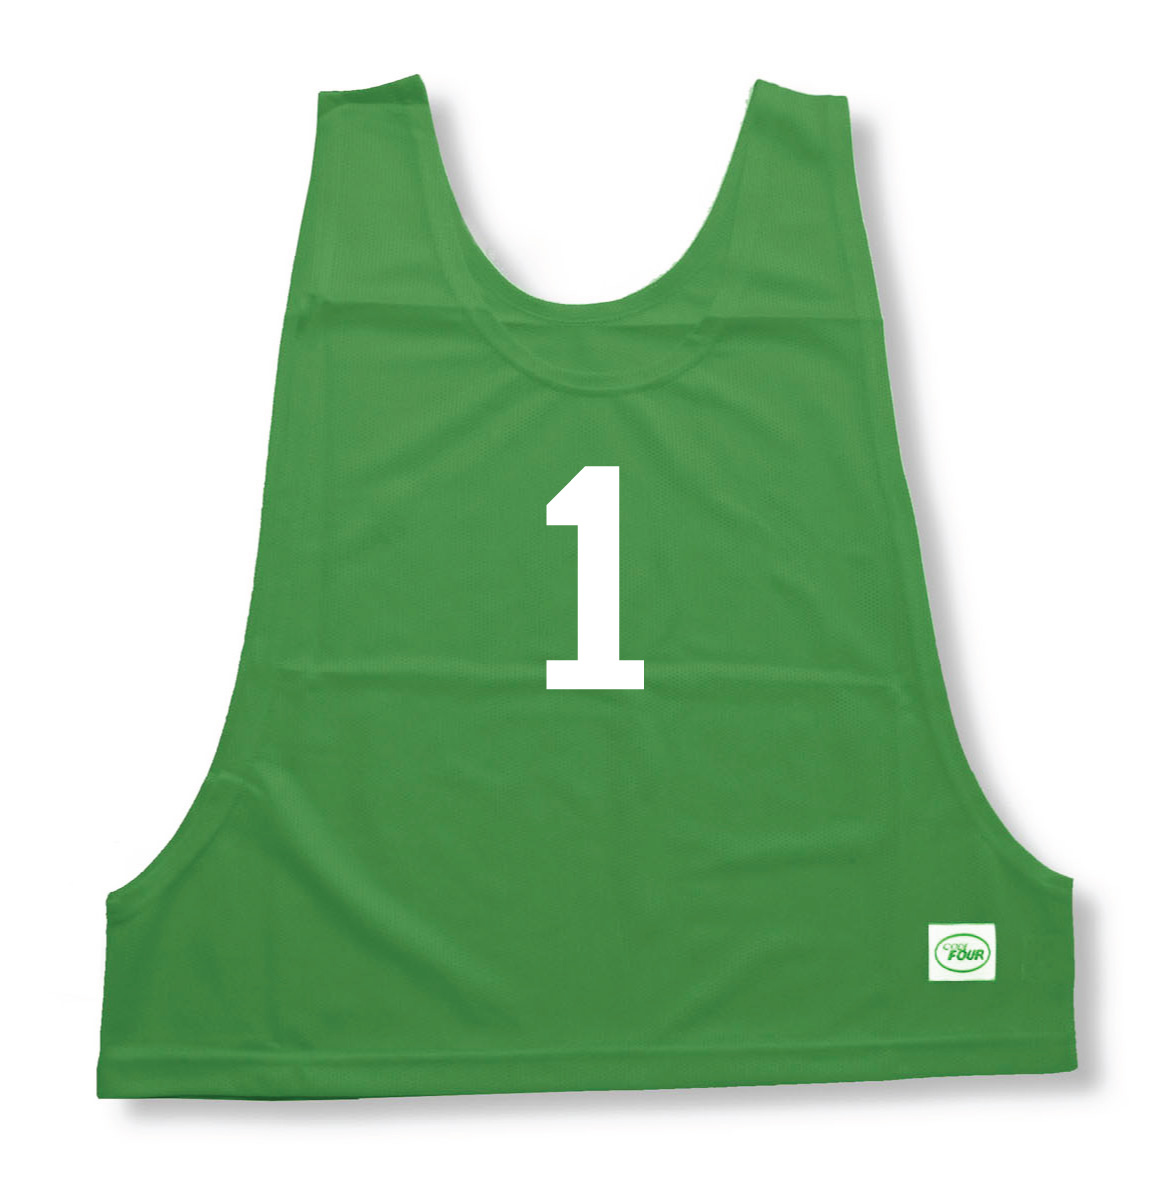 Numbered soccer pinnies at CodeFourAthletics.com